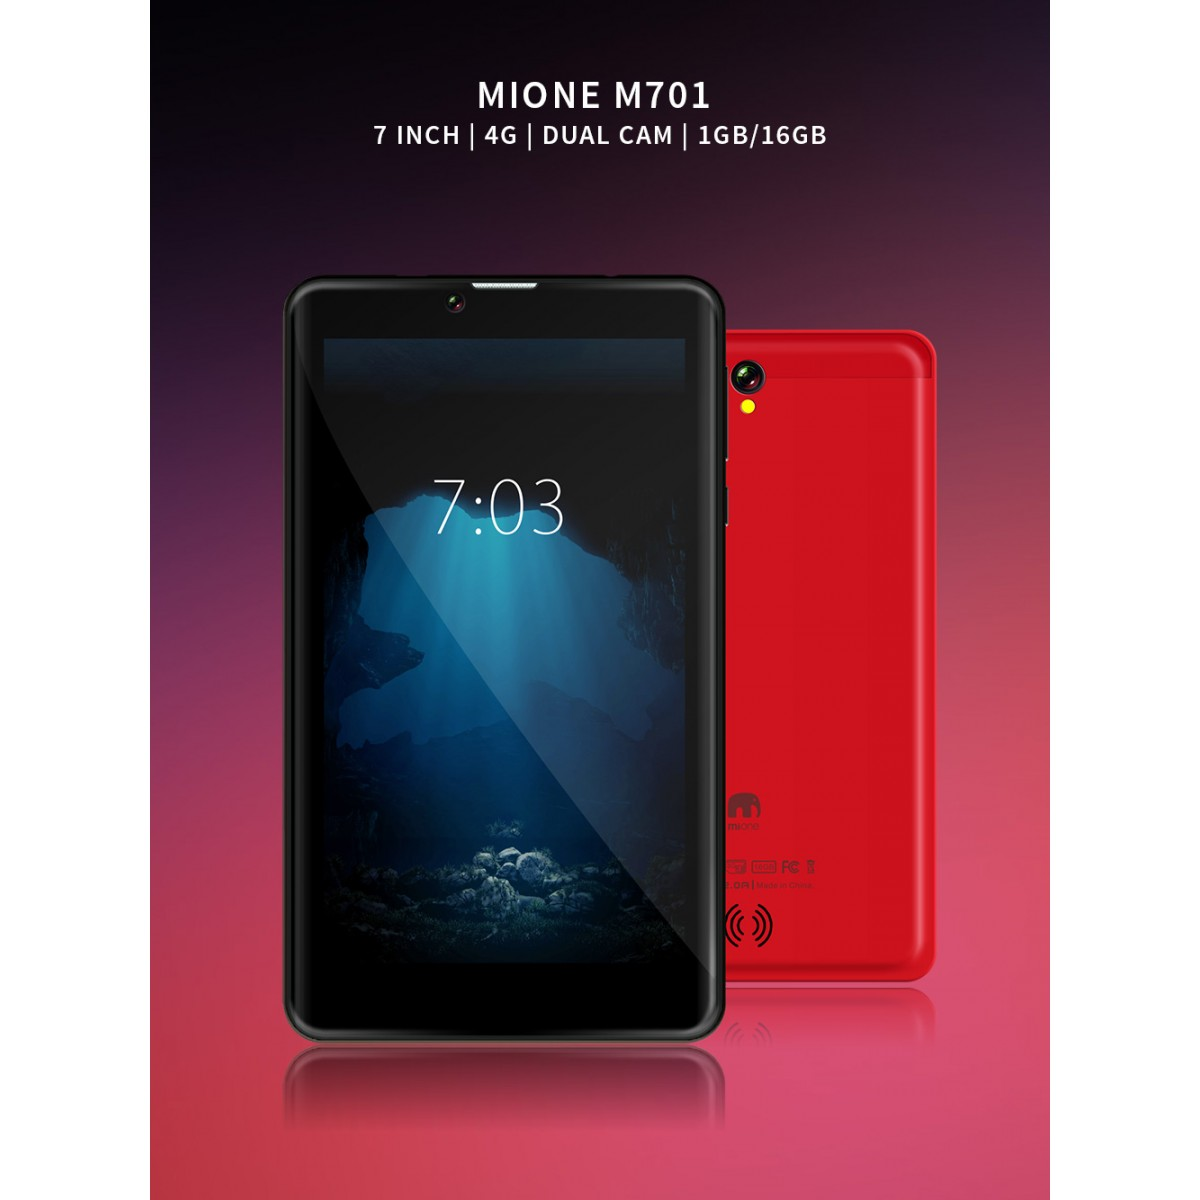 Mione M701 - All Mobile Phones - Mobile Phones - Electronics